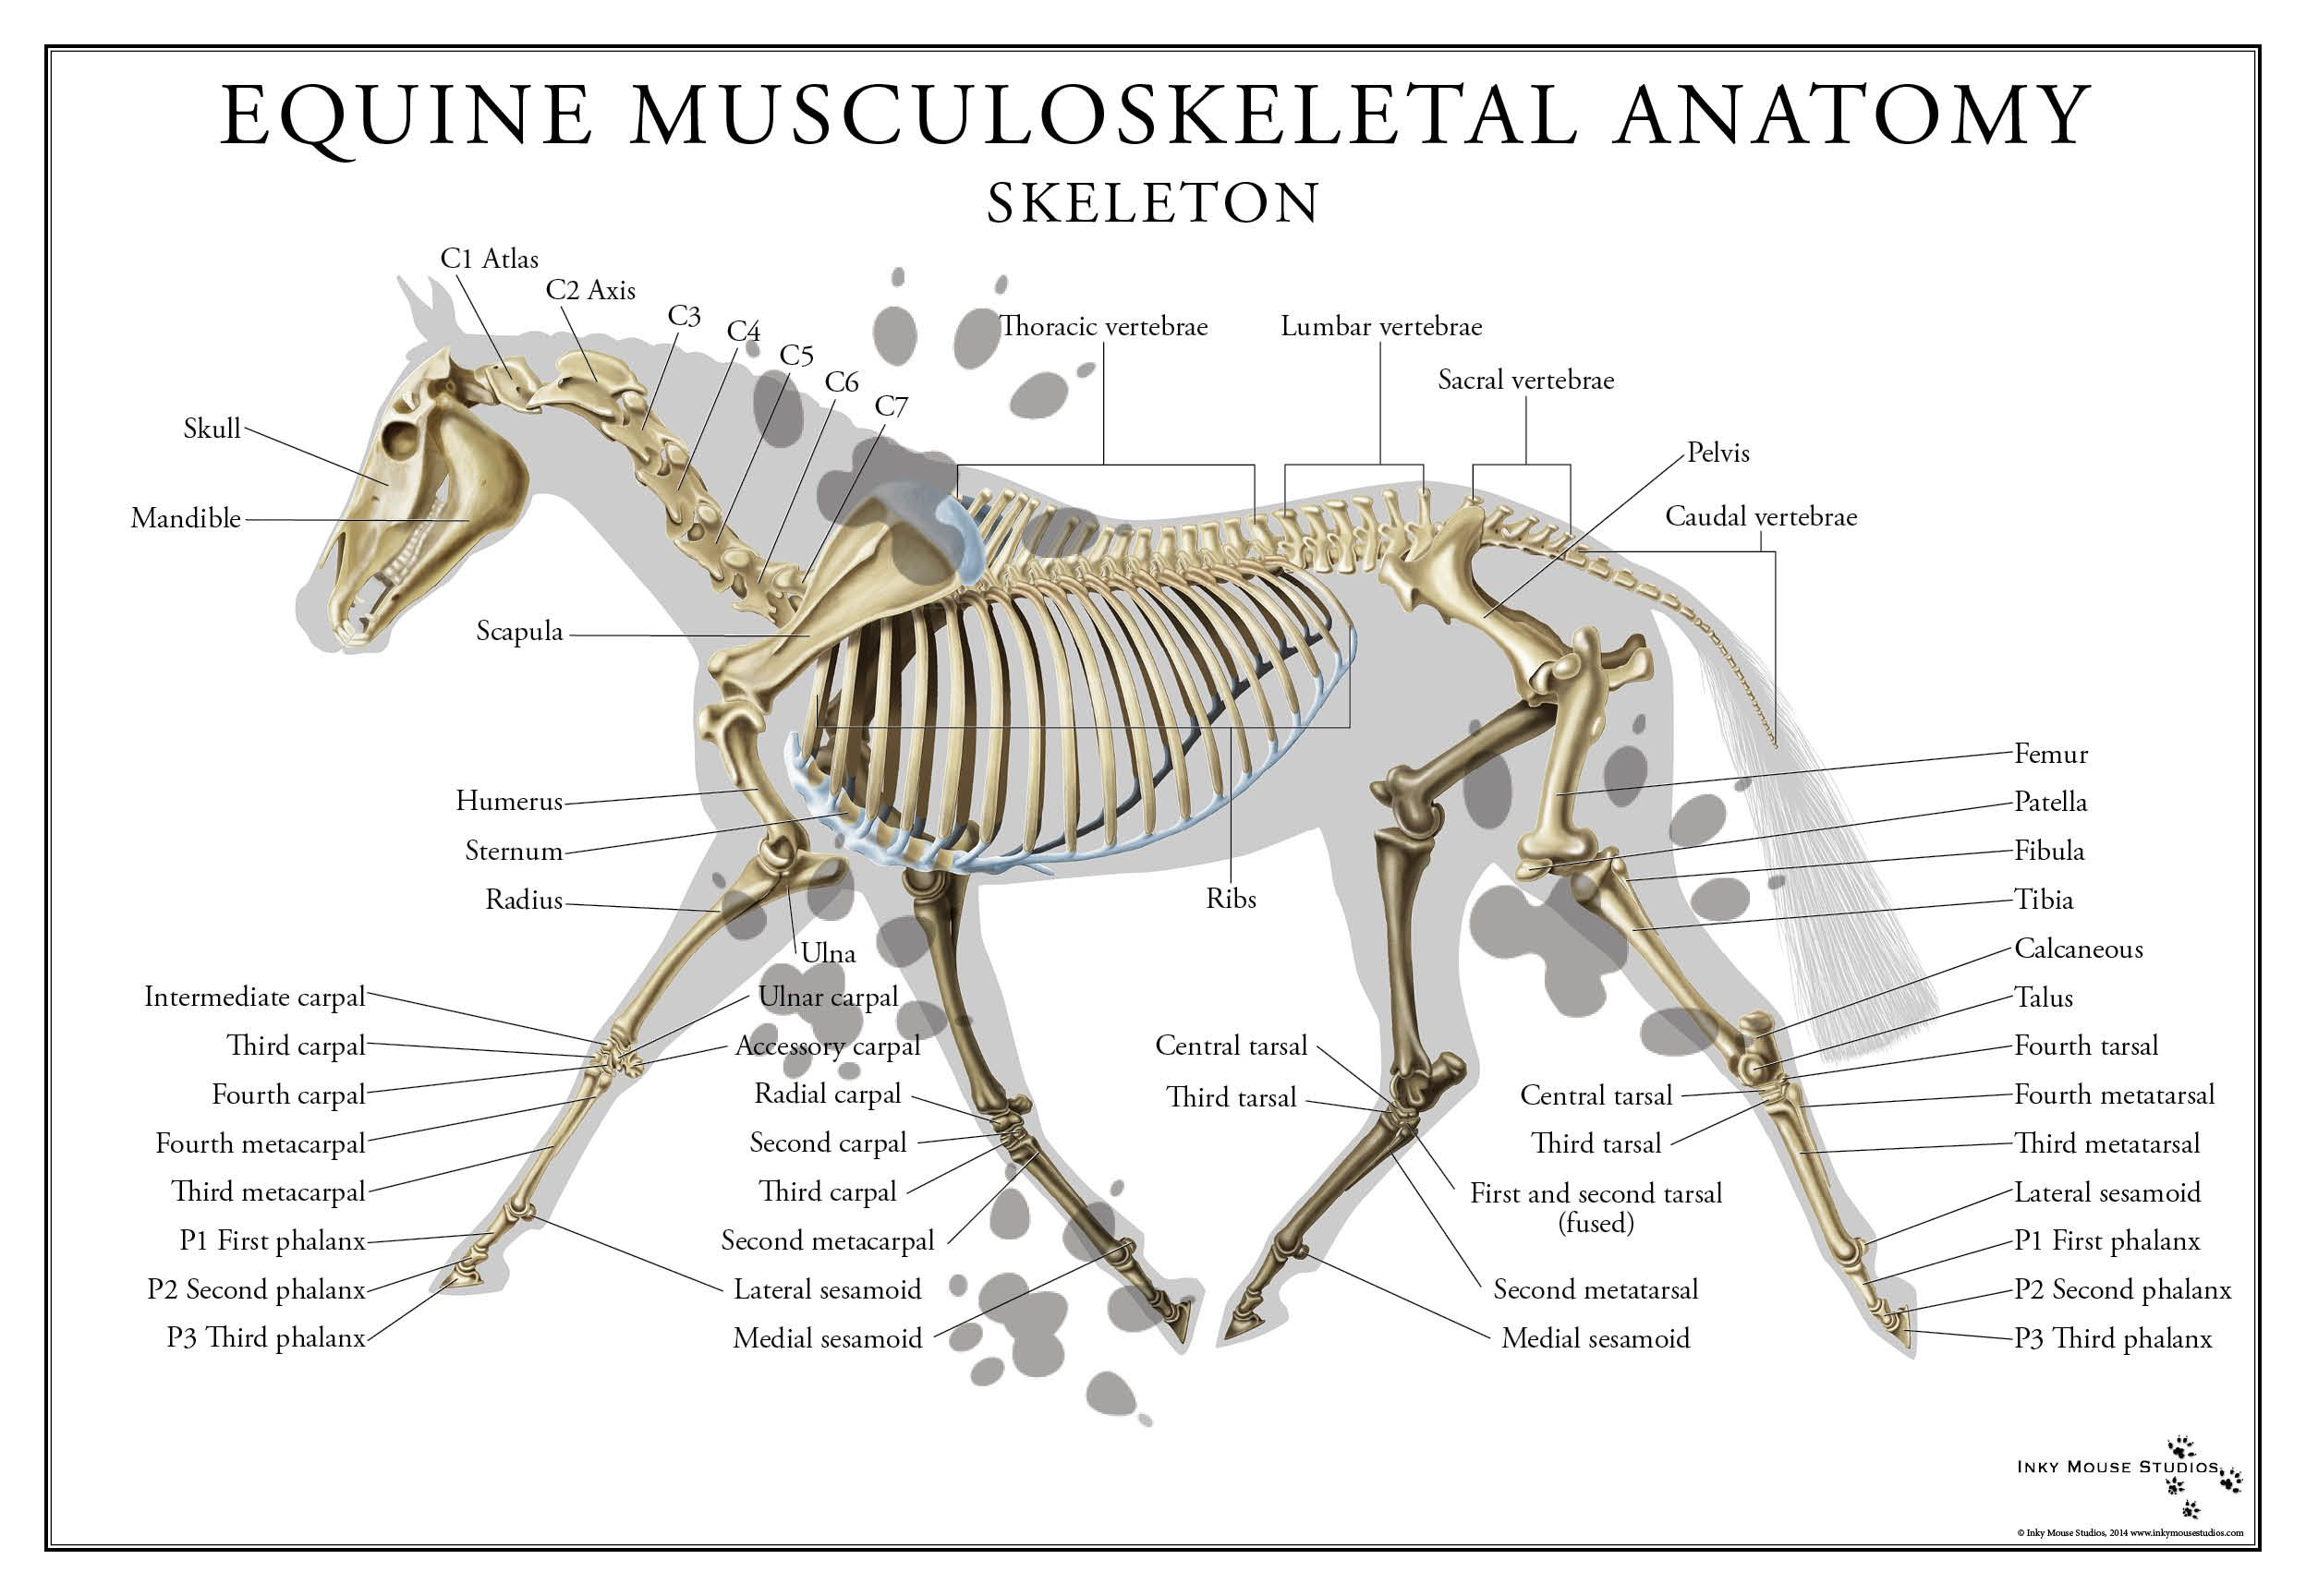 medium resolution of full color poster of the equine skeletal system perfect for a classroom or clinical setting